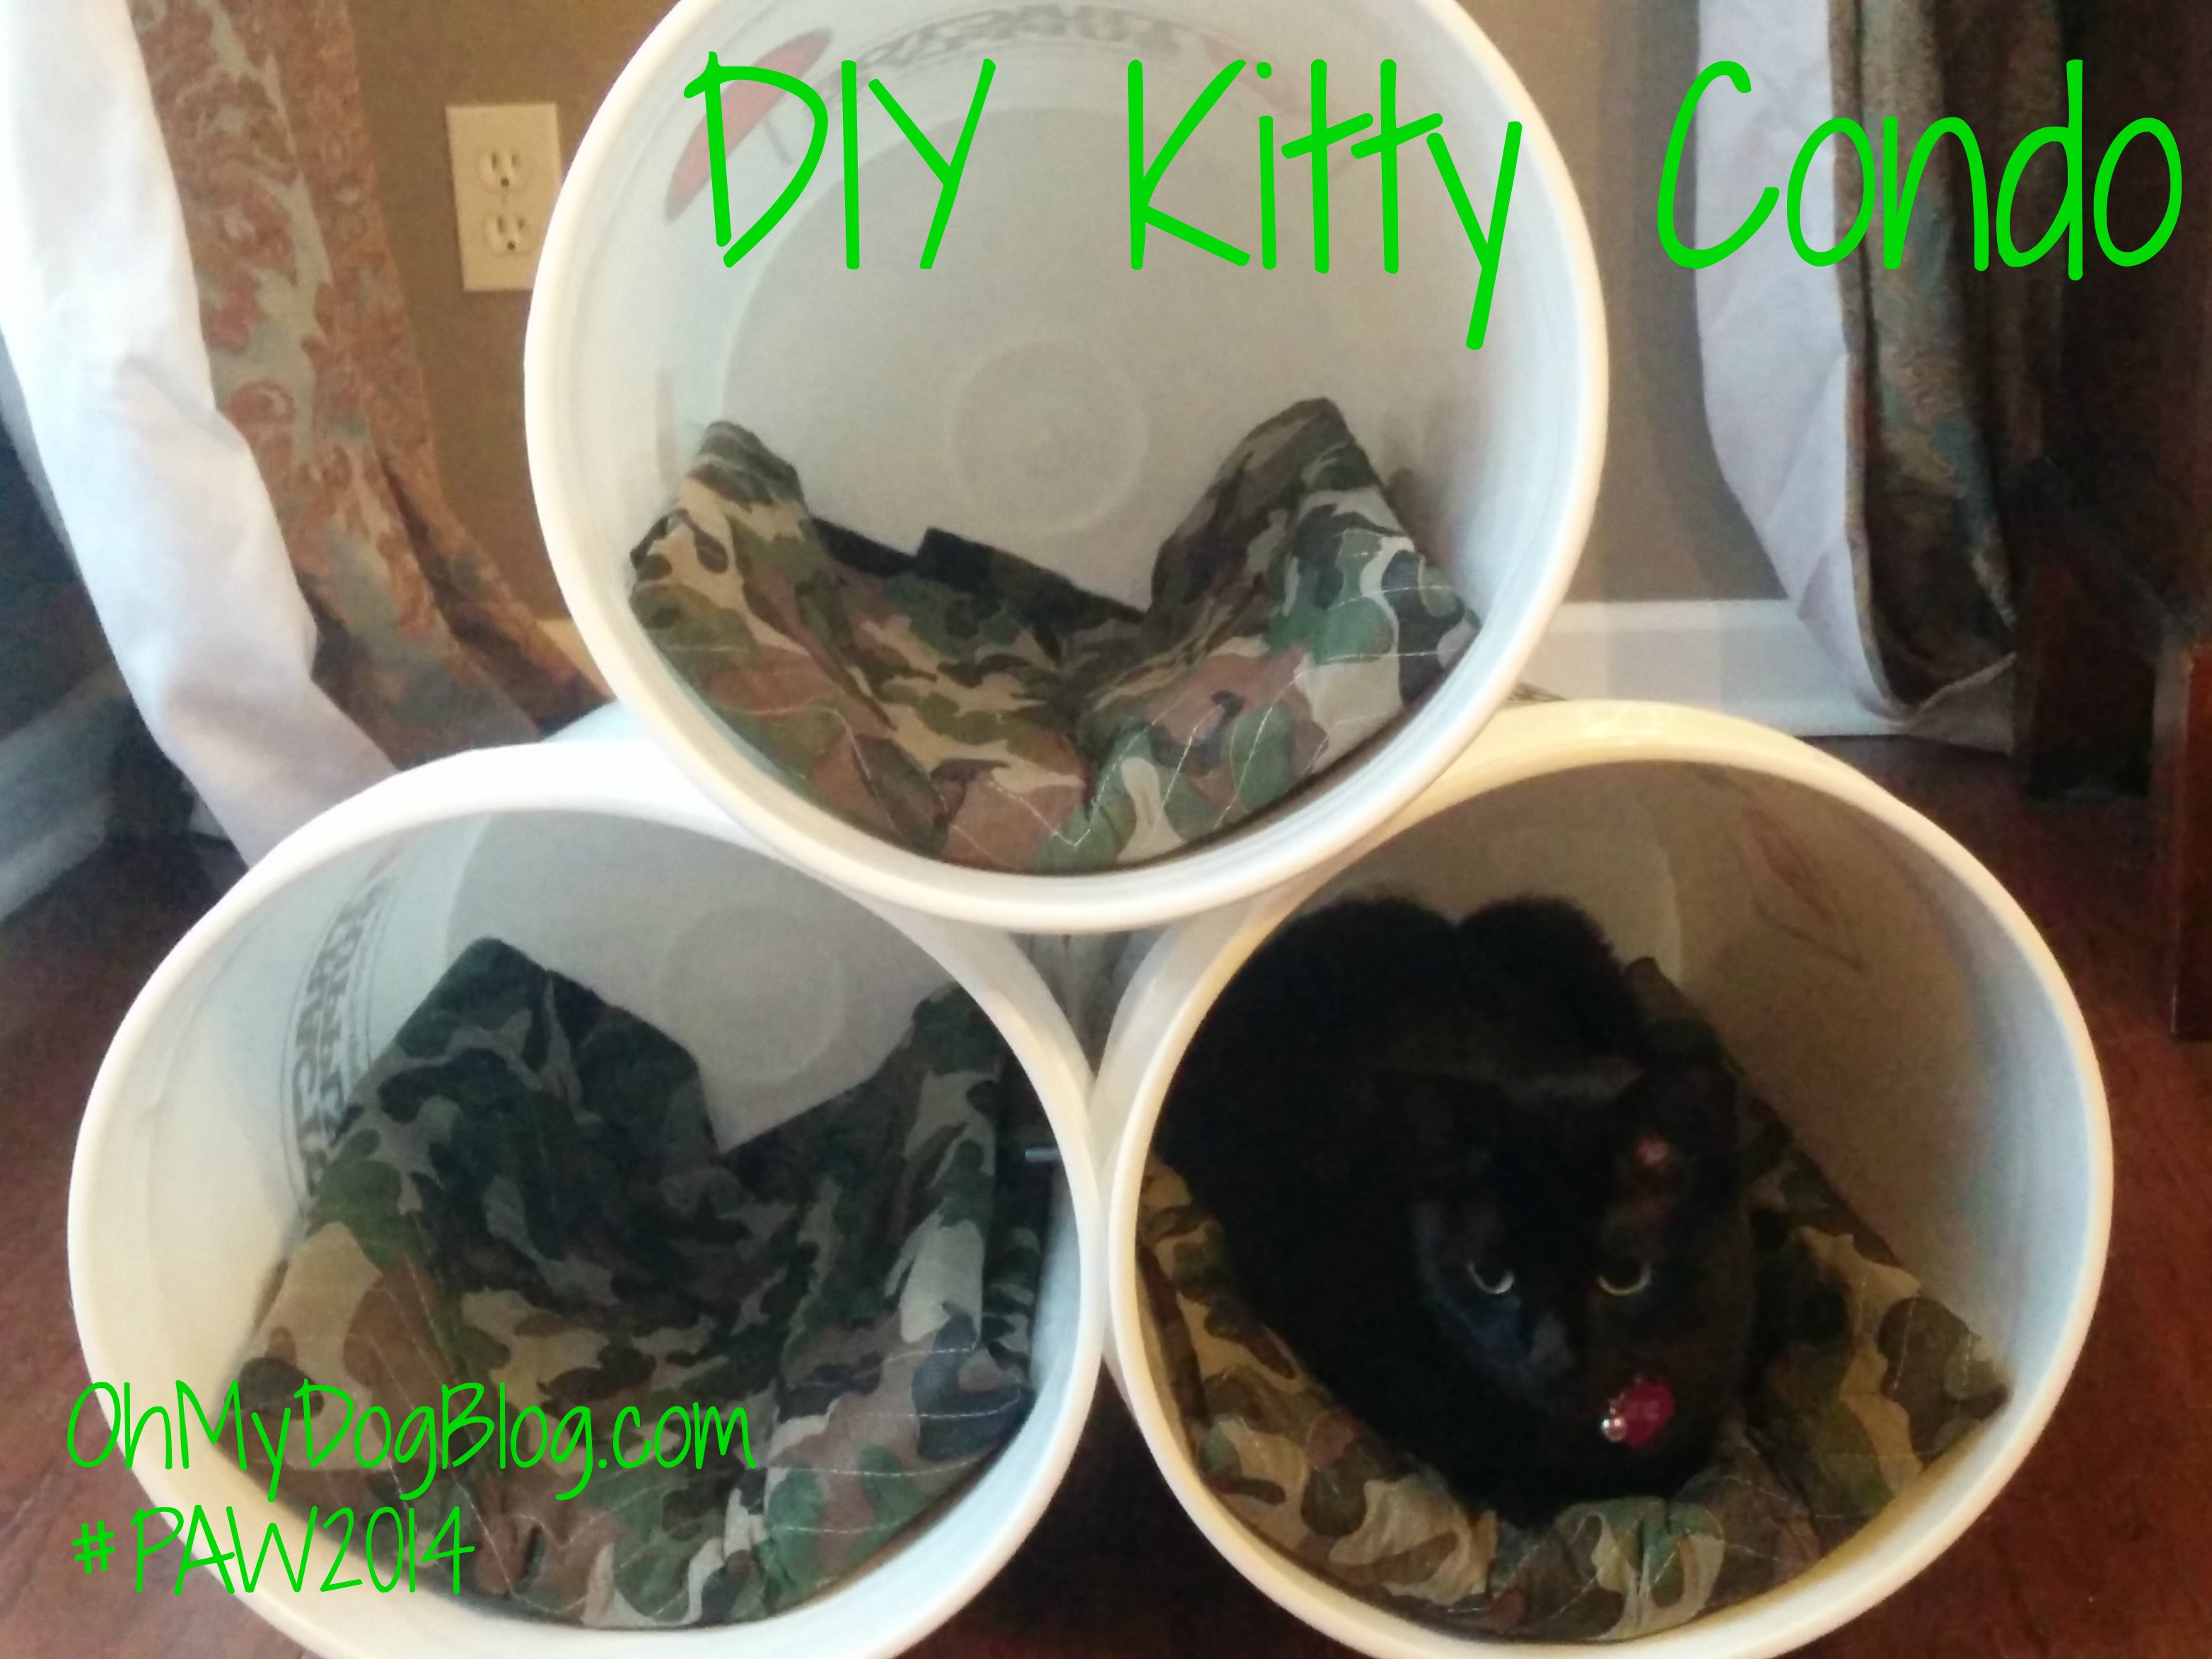 Best ideas about DIY Kitty Condo . Save or Pin Simple DIY Kitty Condo Using Tractor Supply Materials Now.